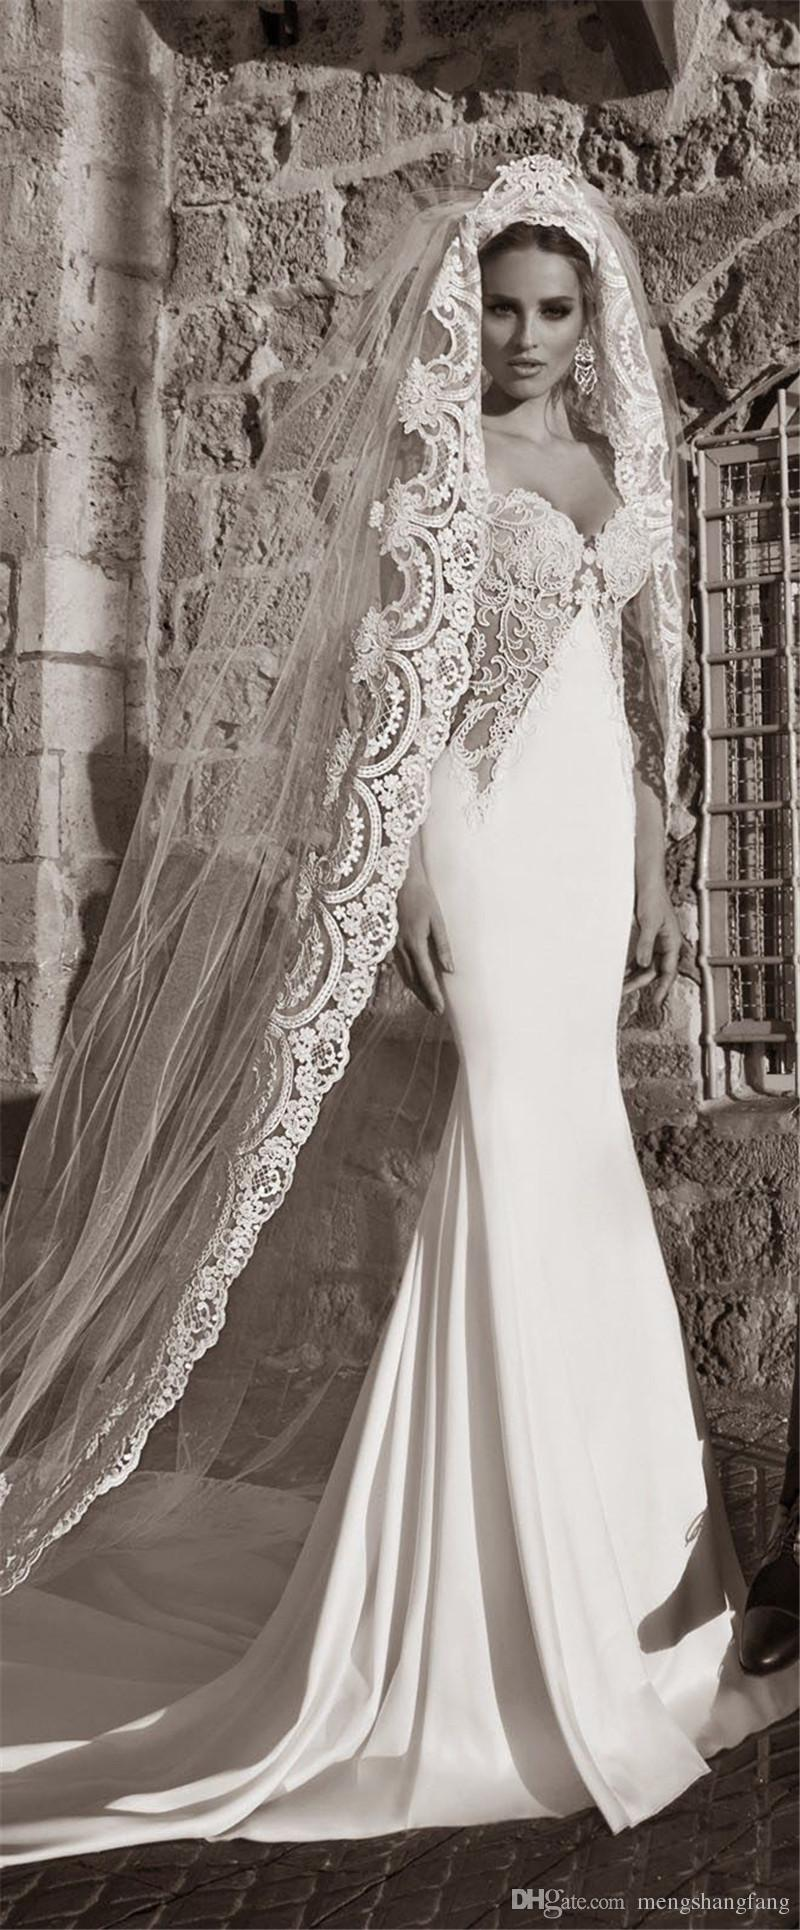 3 M Length 3 M Width Vintage Style Cathedral Bridal Veil with Comb Long Lace Appliques One Layer Wedding Dresses Veil